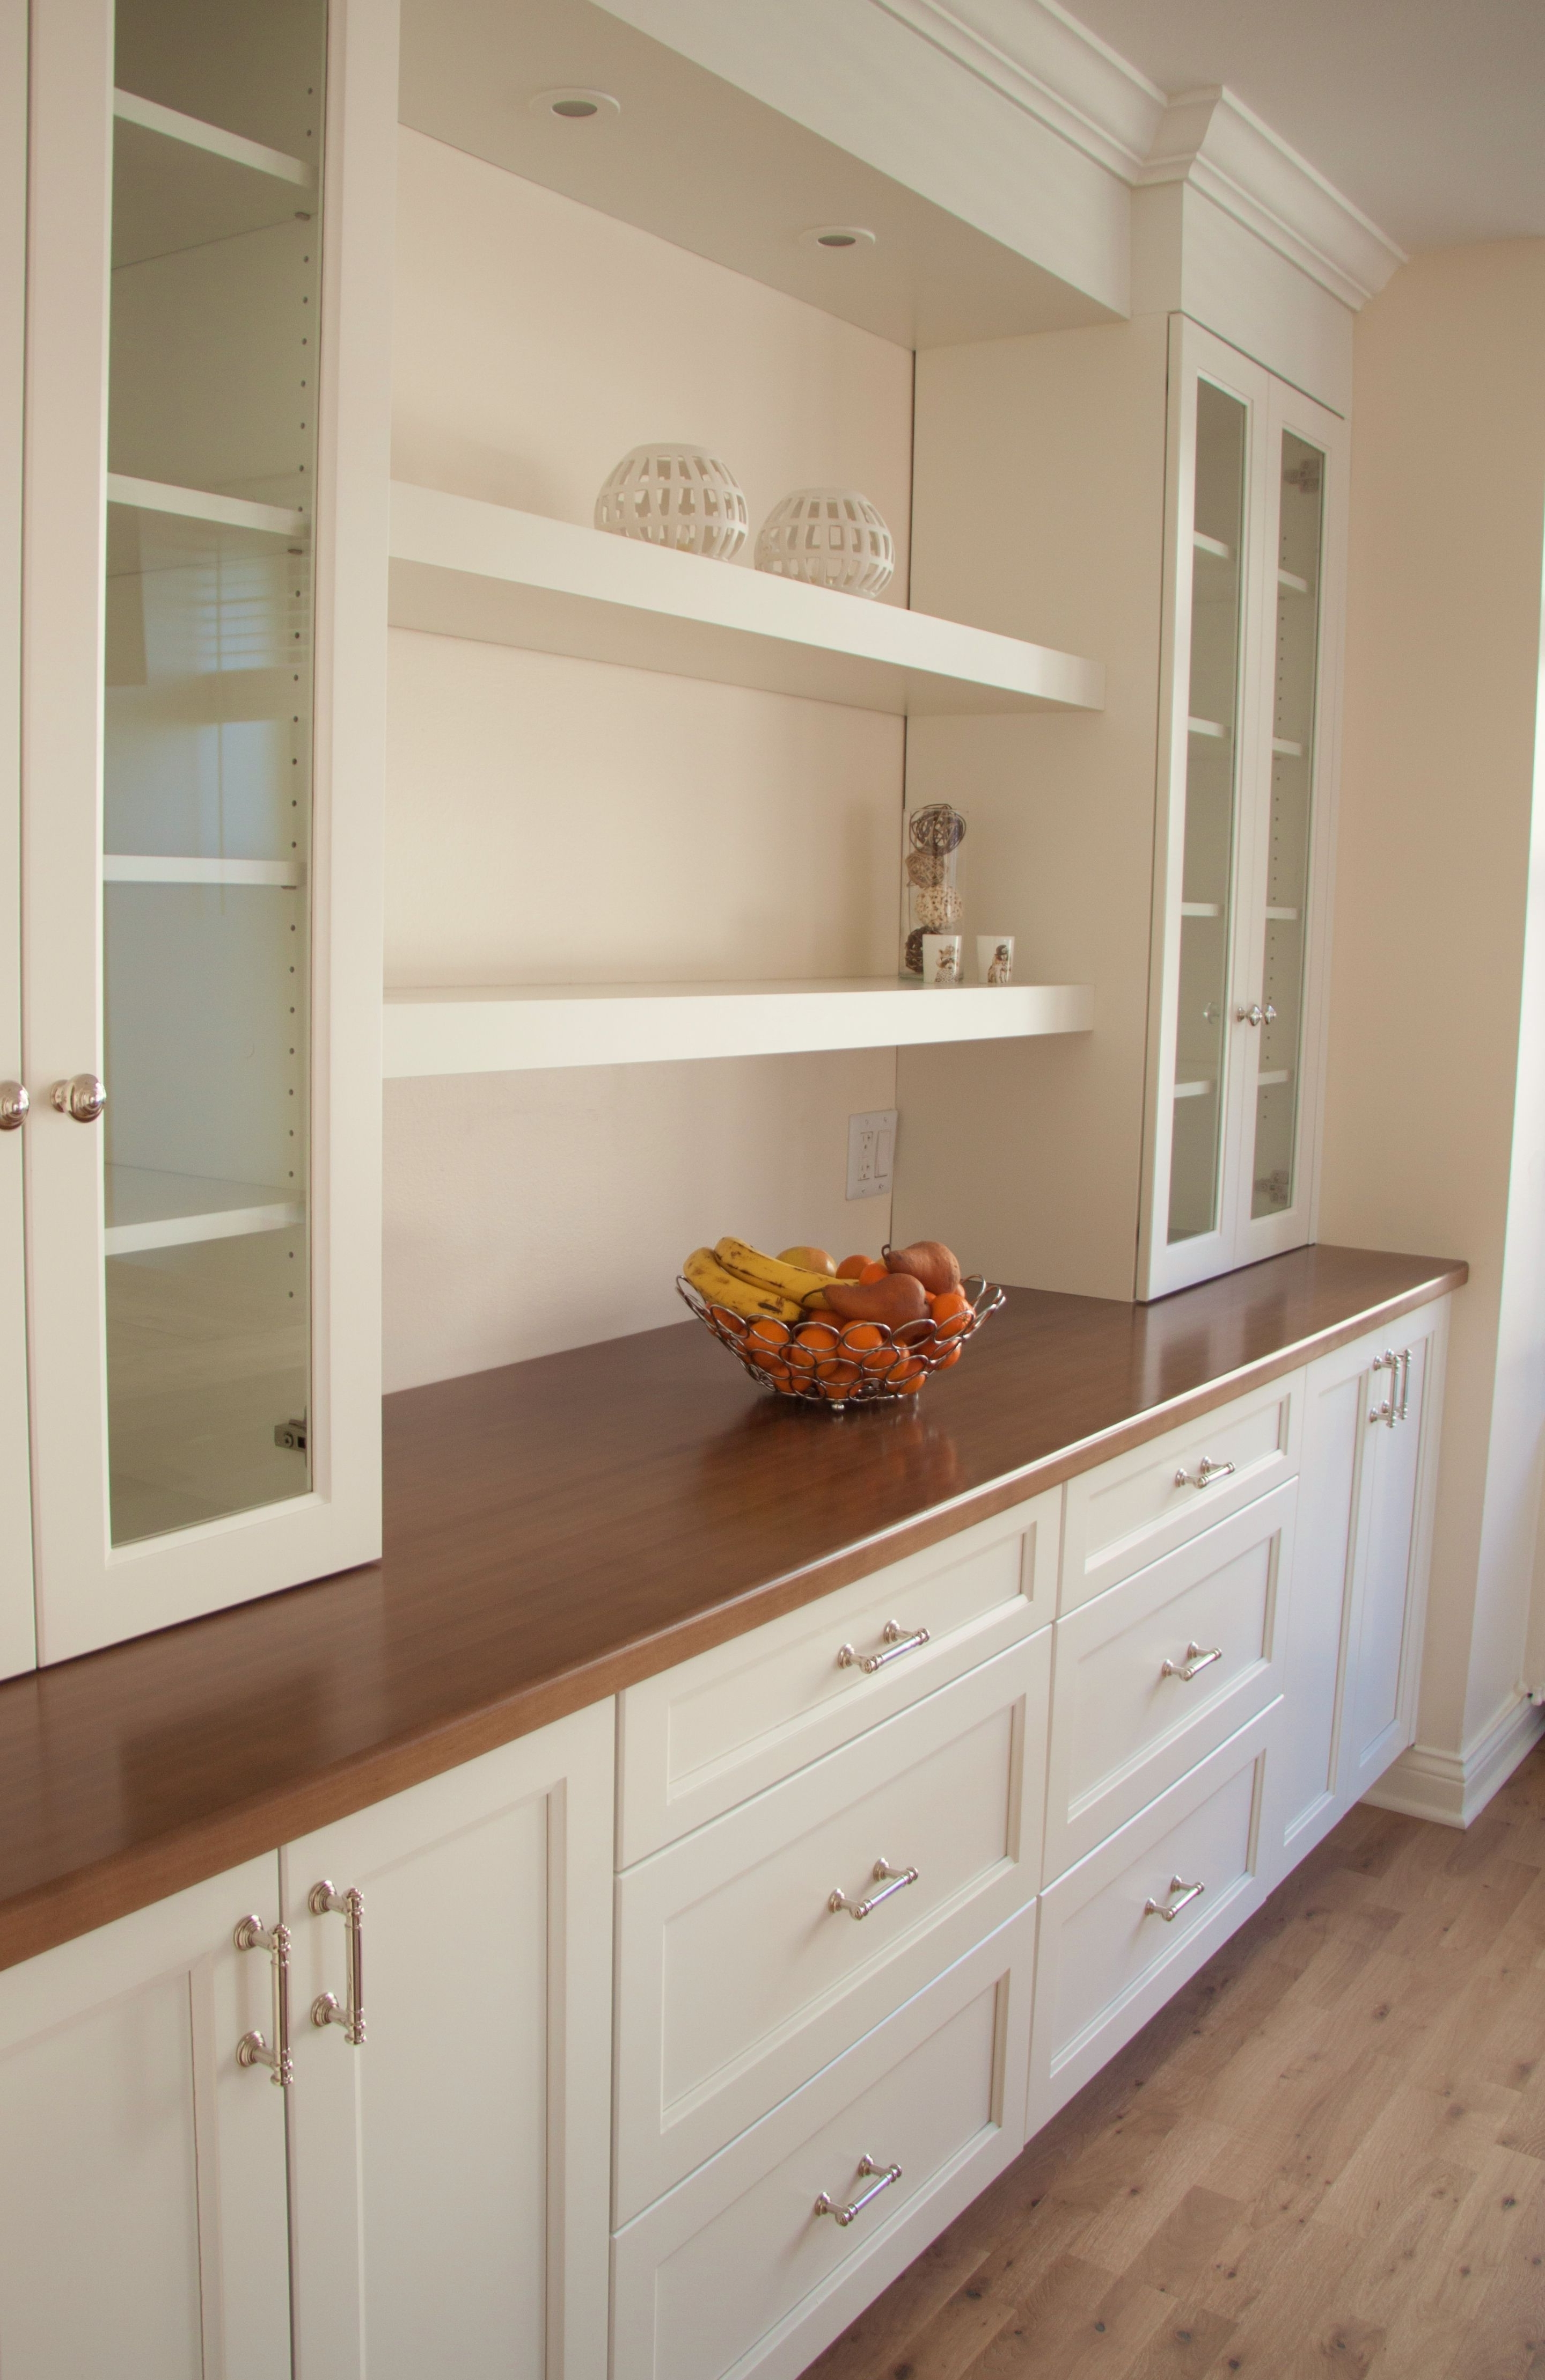 For Pertaining To Recent Dining Room Cabinets (View 2 of 25)